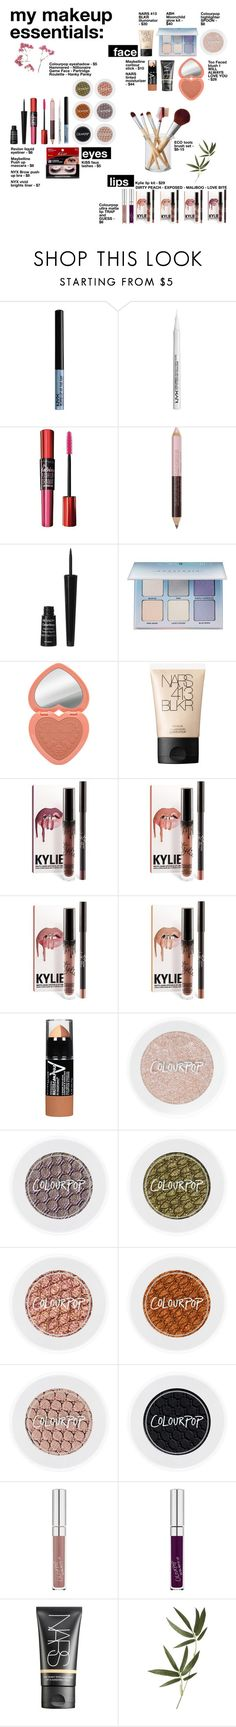 """""""MAKEUP ESSENTIALS SEPT. 2016"""" by freakystyley ❤ liked on Polyvore featuring Maybelline, NYX, Revlon, Anastasia Beverly Hills, Too Faced Cosmetics, NARS Cosmetics, Hanky Panky, GUESS, Crate and Barrel and contestentry"""